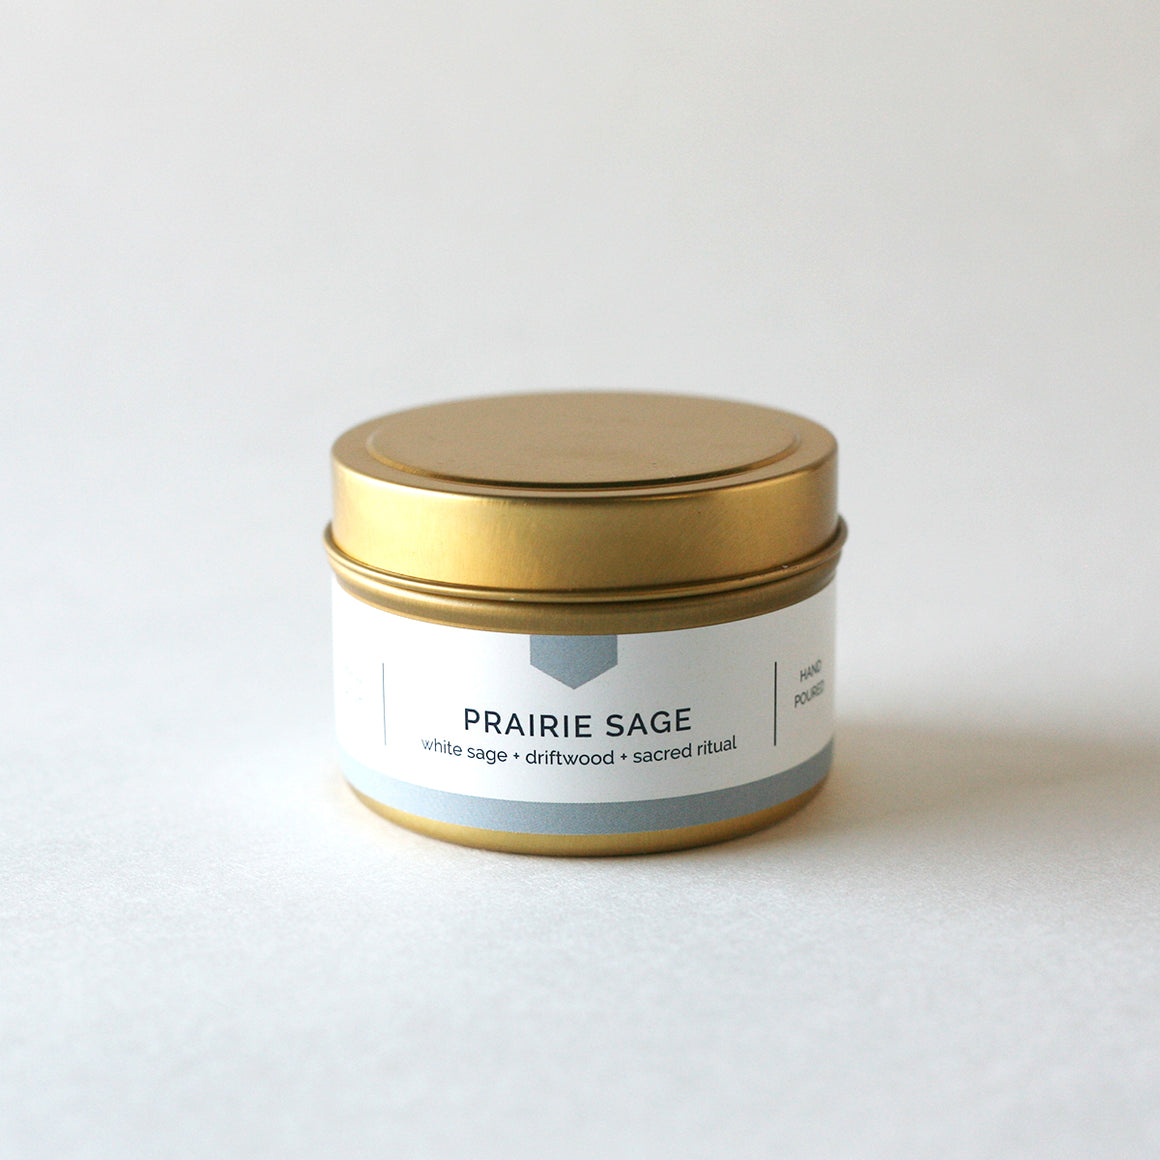 PRAIRIE SAGE 4 oz Travel Tin Soy Candle